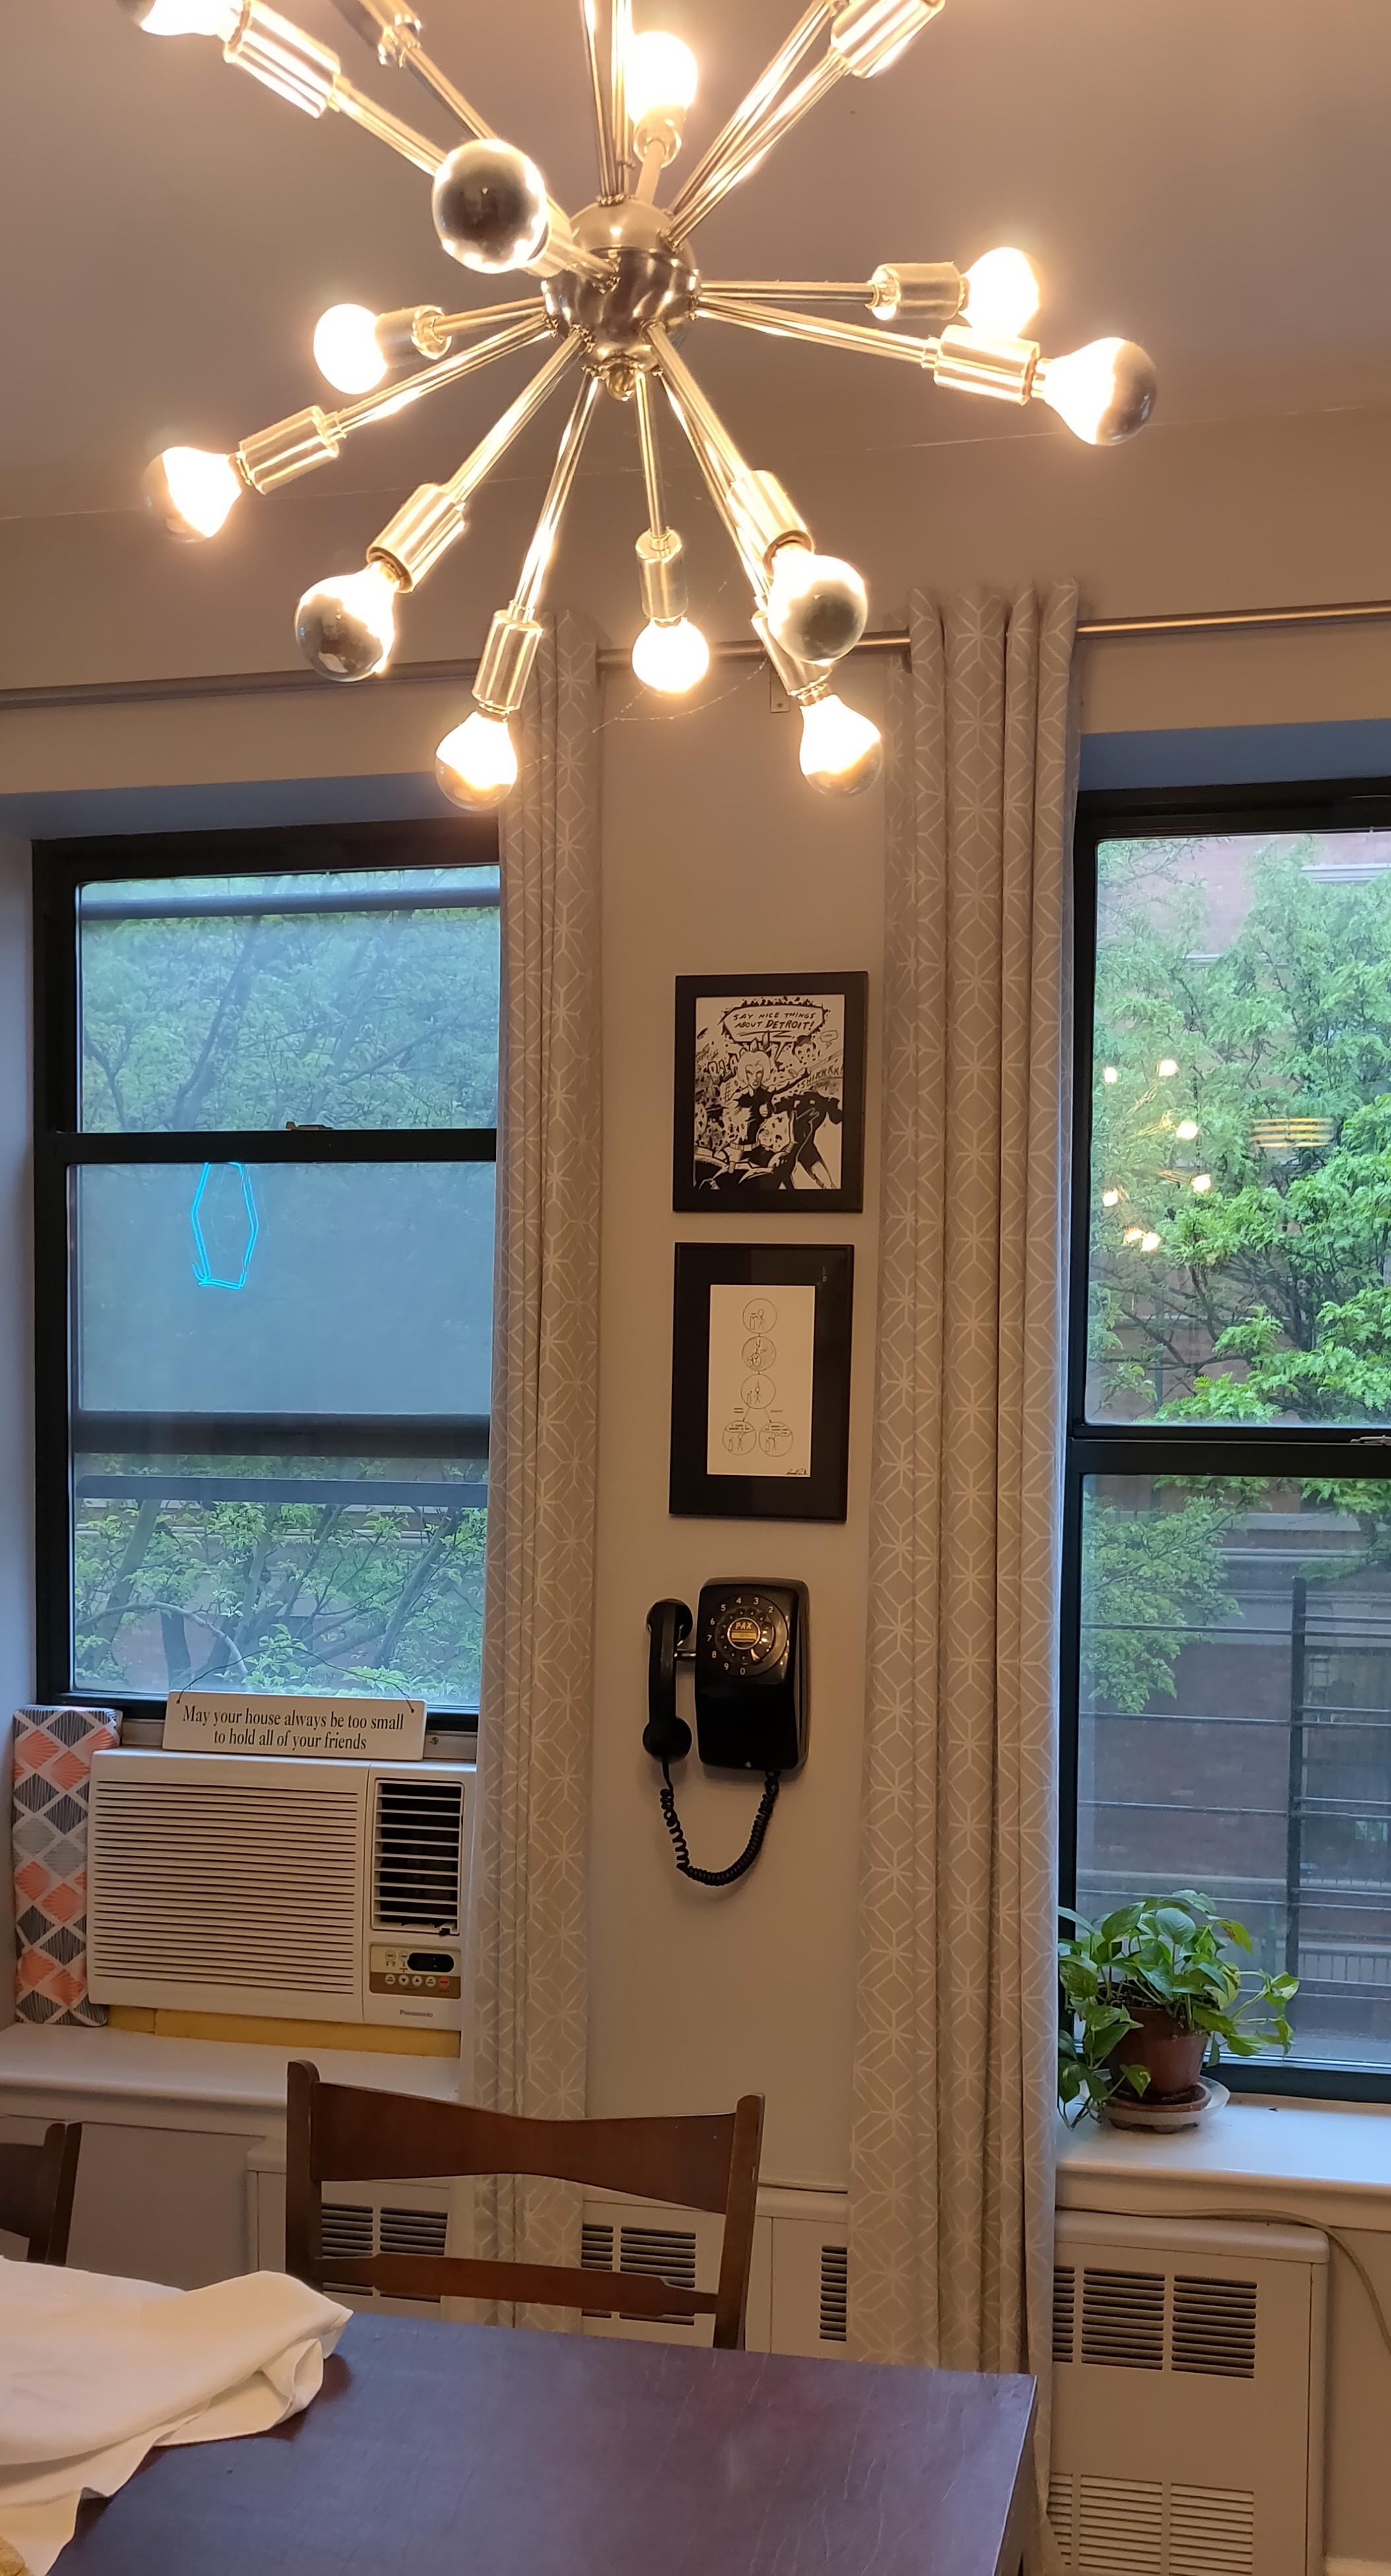 Figure 8. Rotary phone mounted near the dining table.